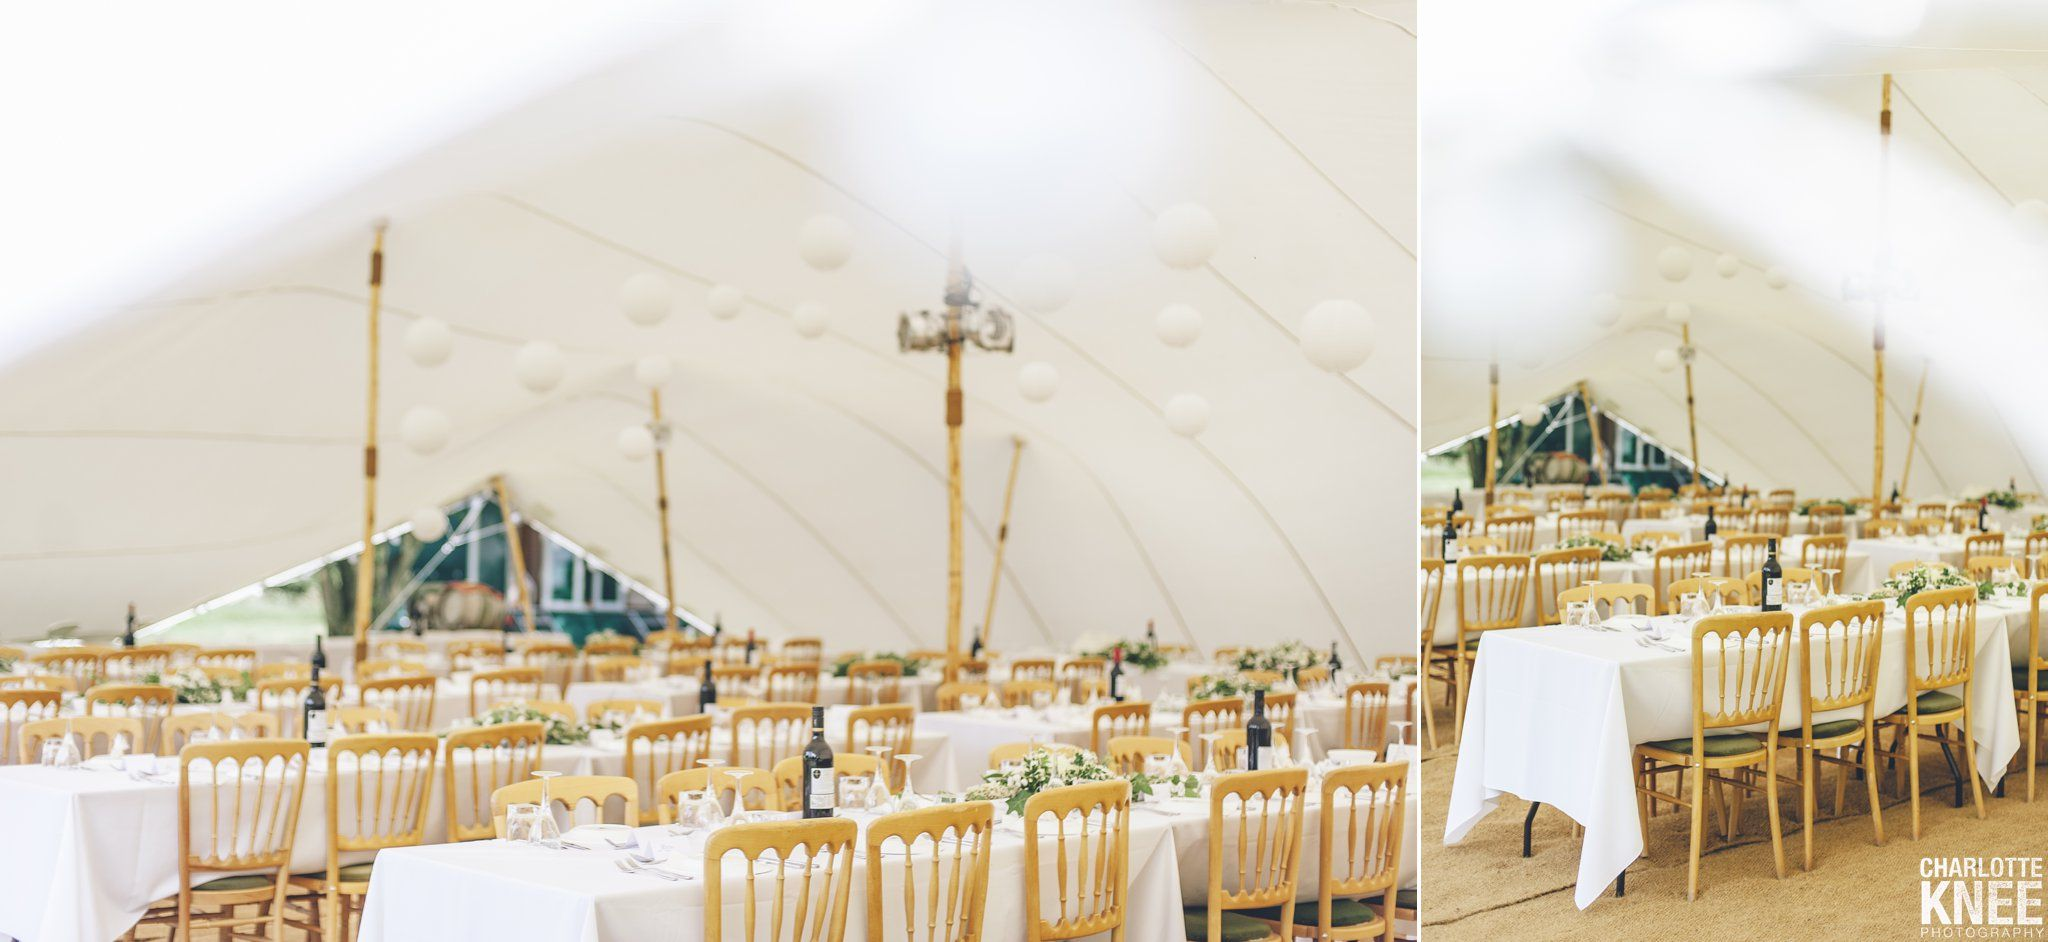 4Elements Tents Stretch Tent Kent Wedding Charlotte Knee Photography_0003.jpg & 4Elements Tents Stretch Tent Kent Wedding Charlotte Knee ...